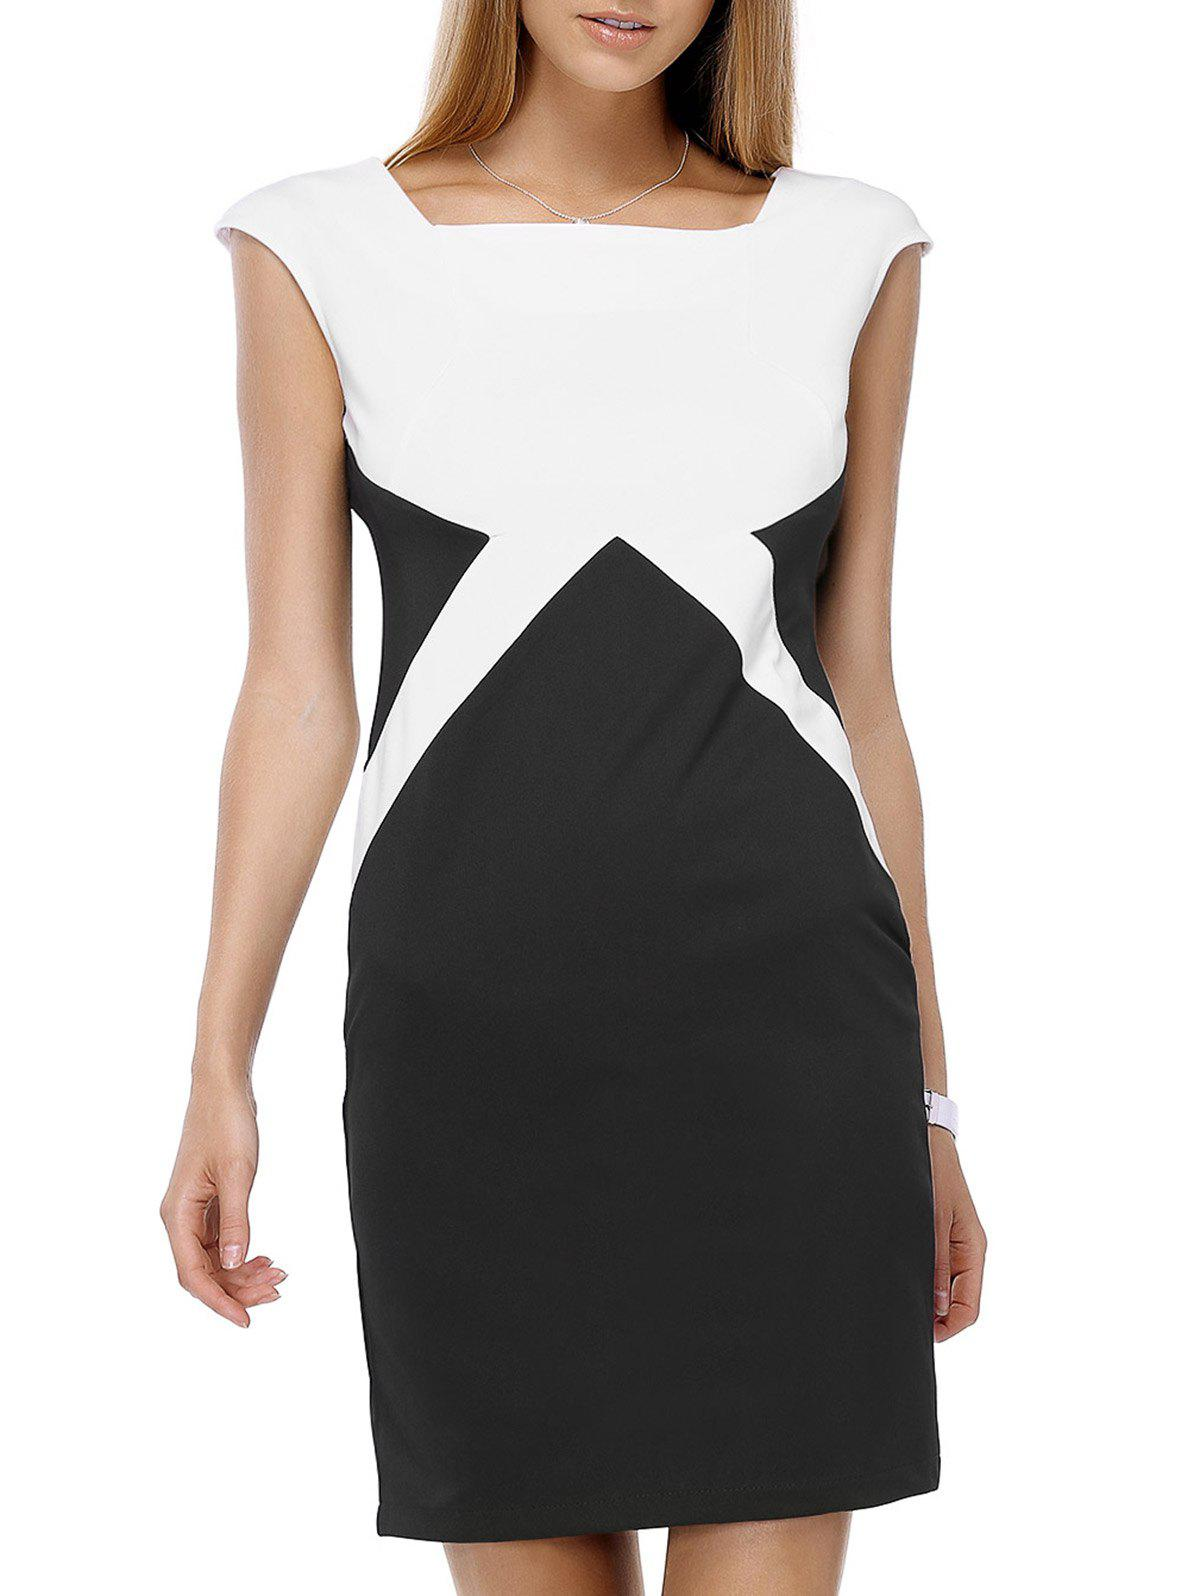 Stylish Women's Square Neck Color Block Dress